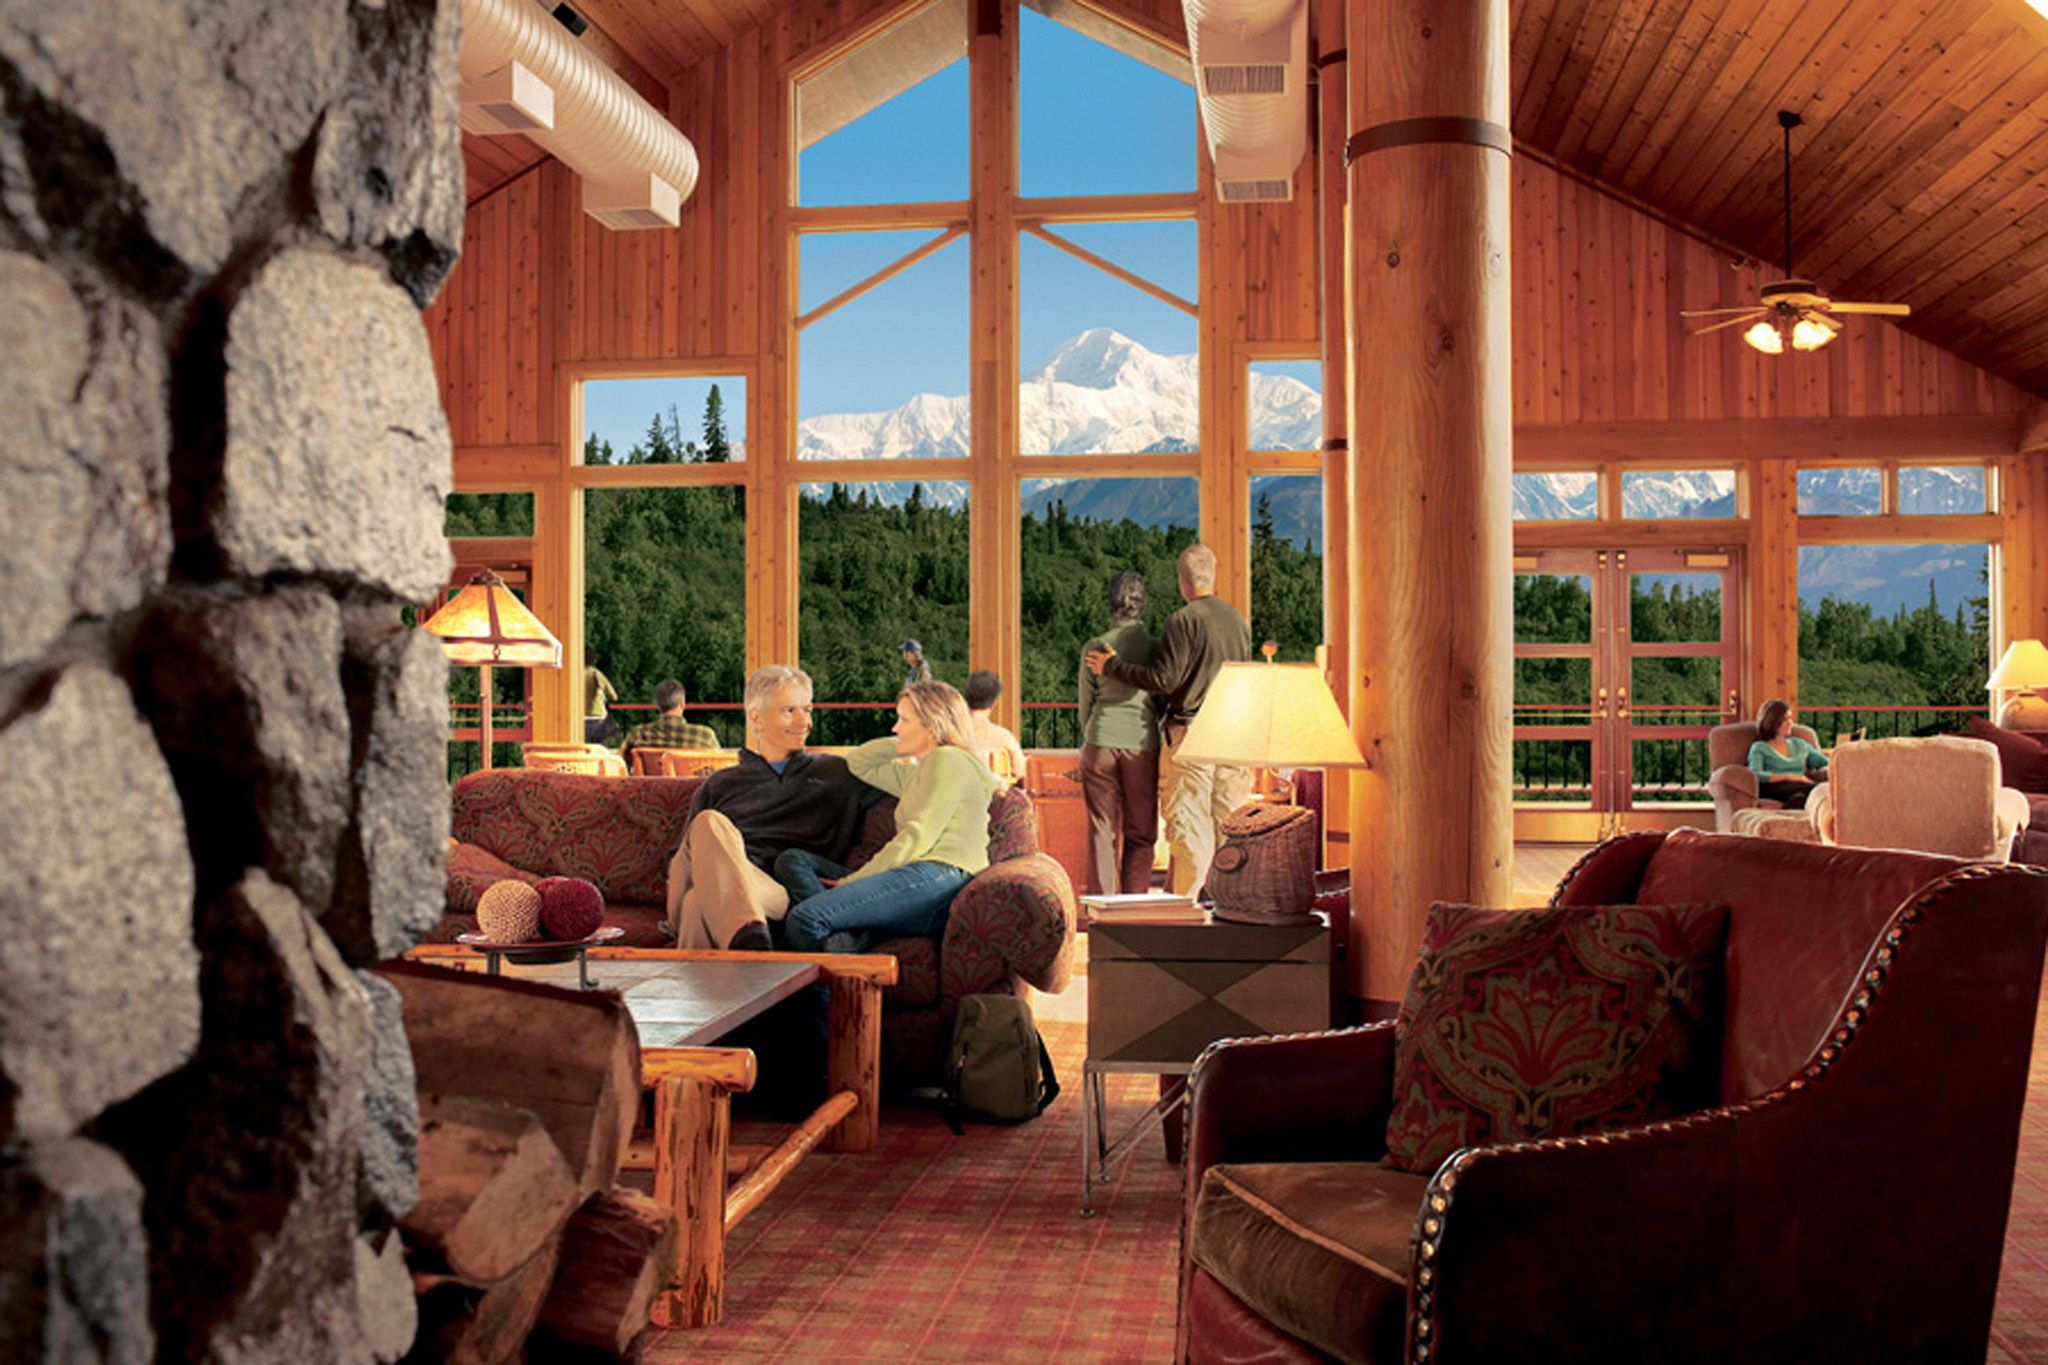 Stay at this wilderness lodge near Denali National Park for great accommodations and views of Mt. McKinley.